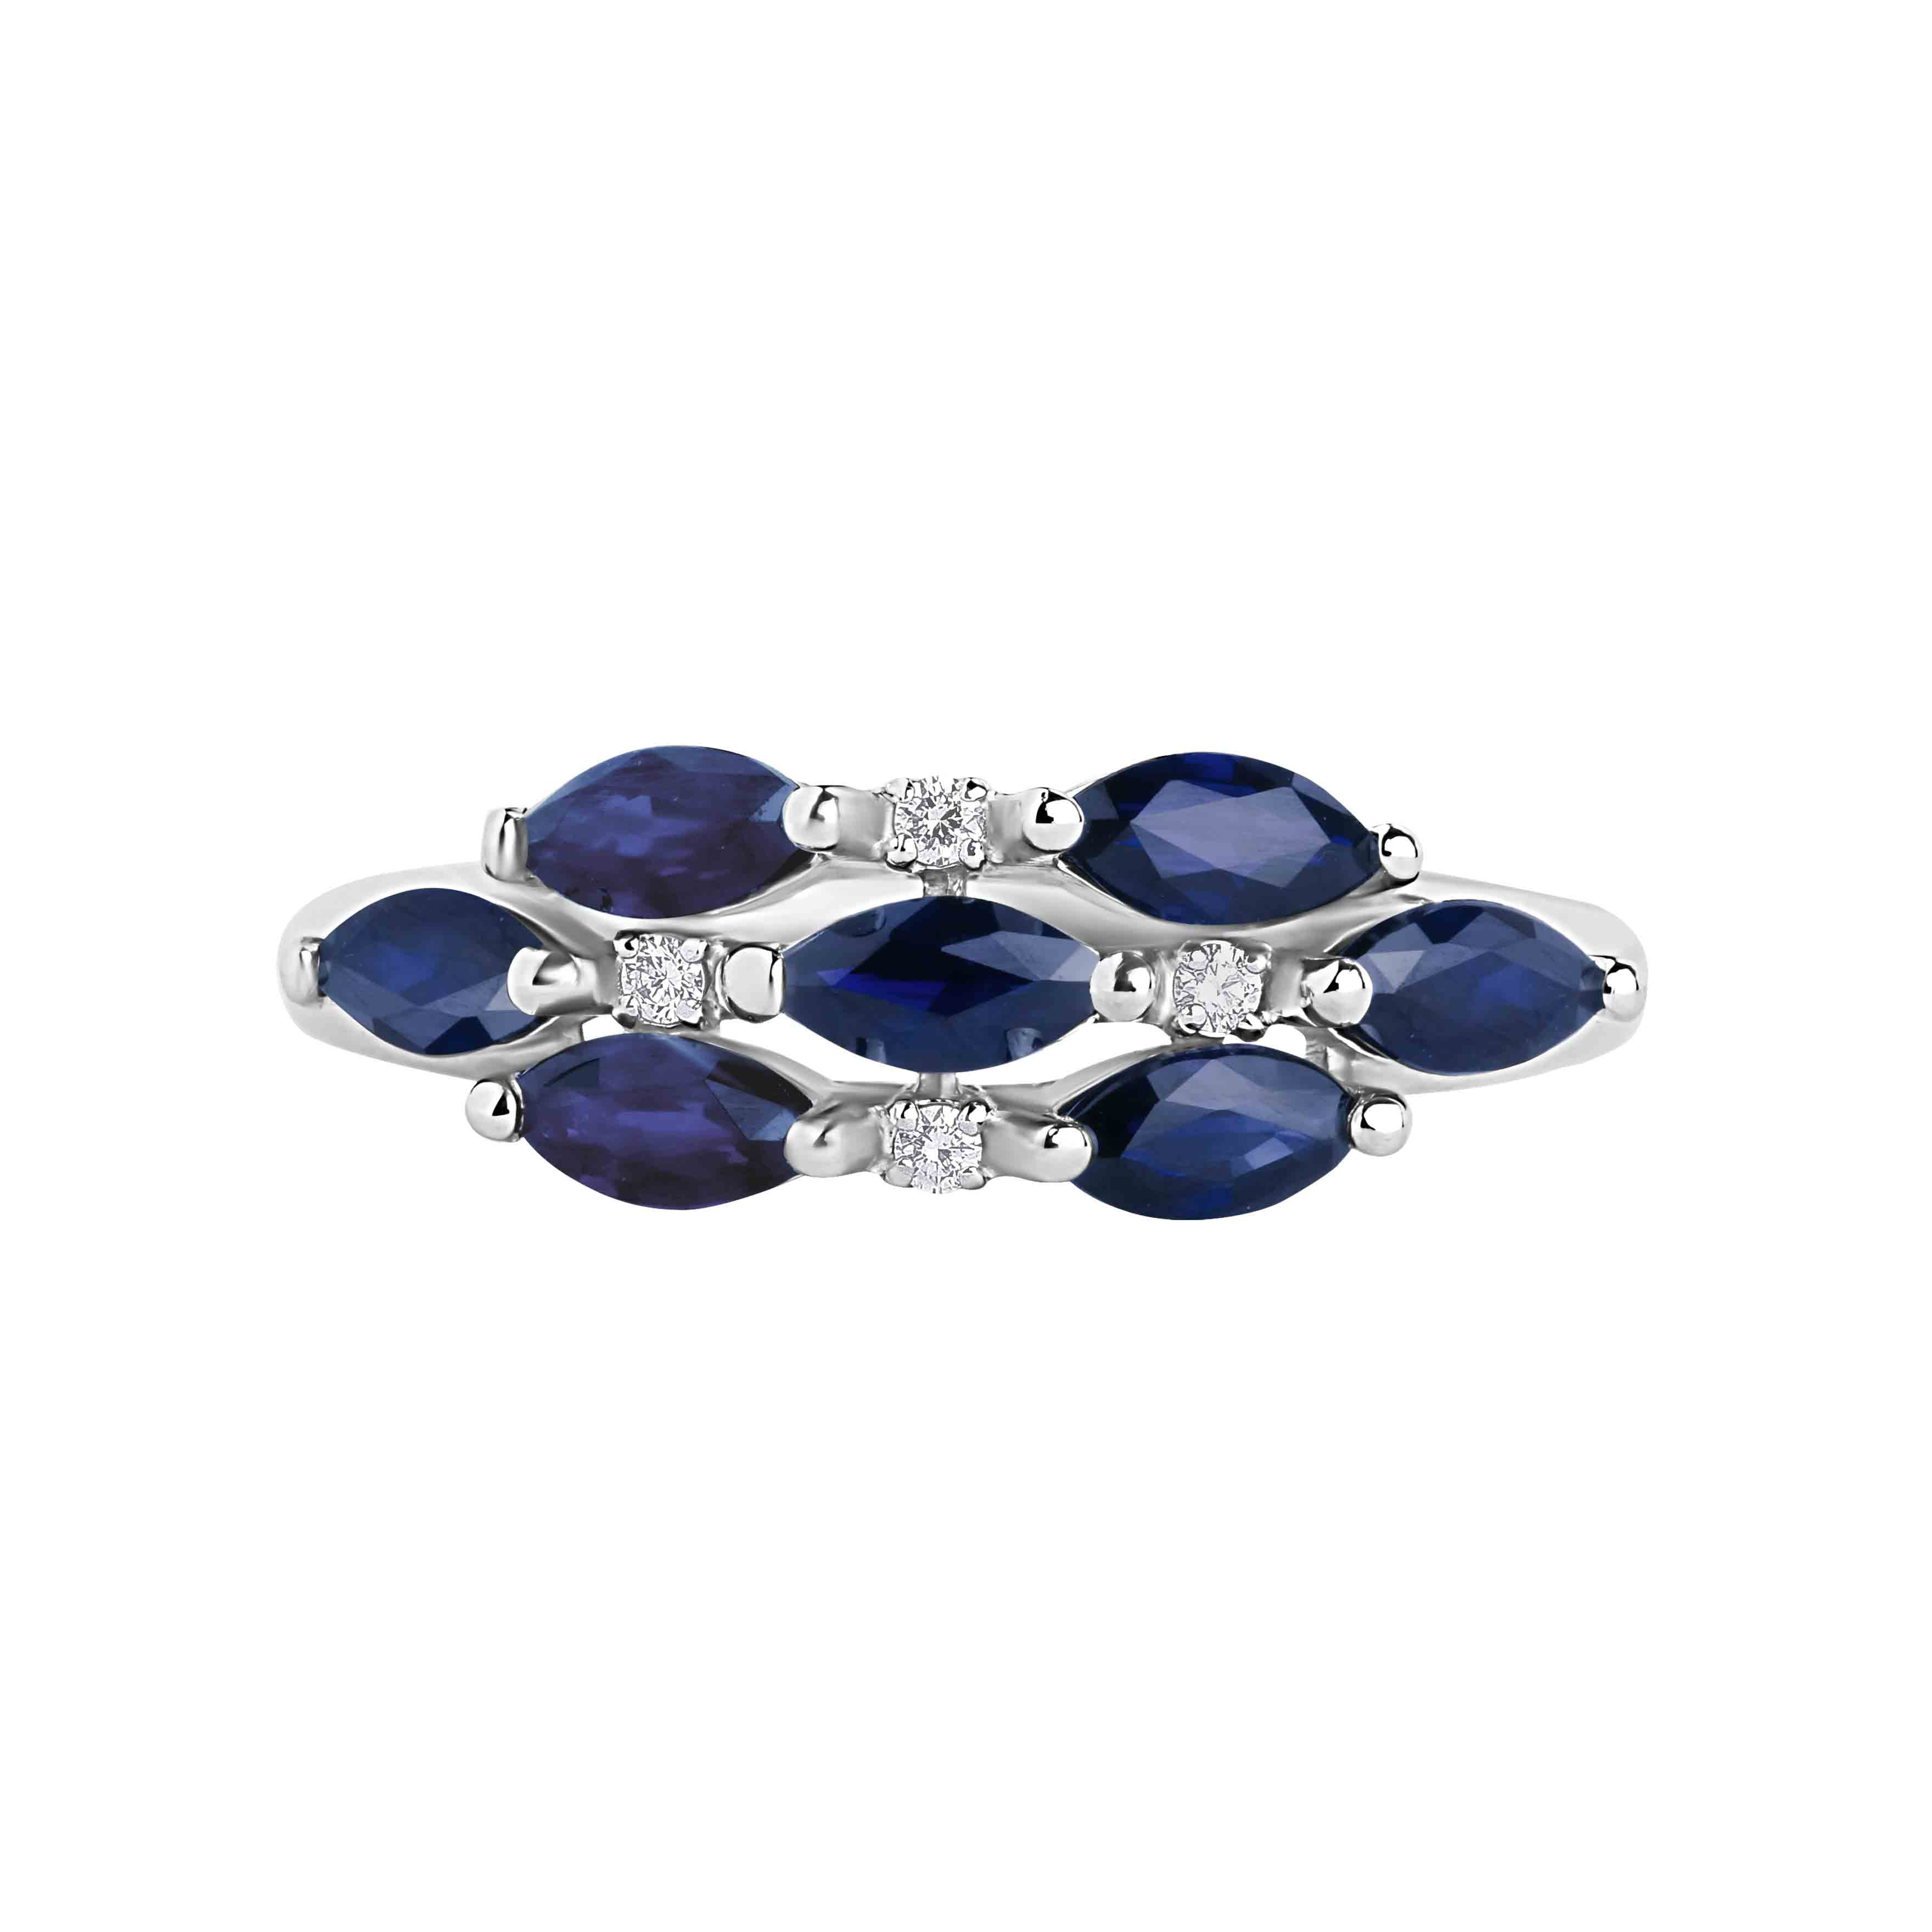 7 marquise sapphires  Russian ring. View 2.